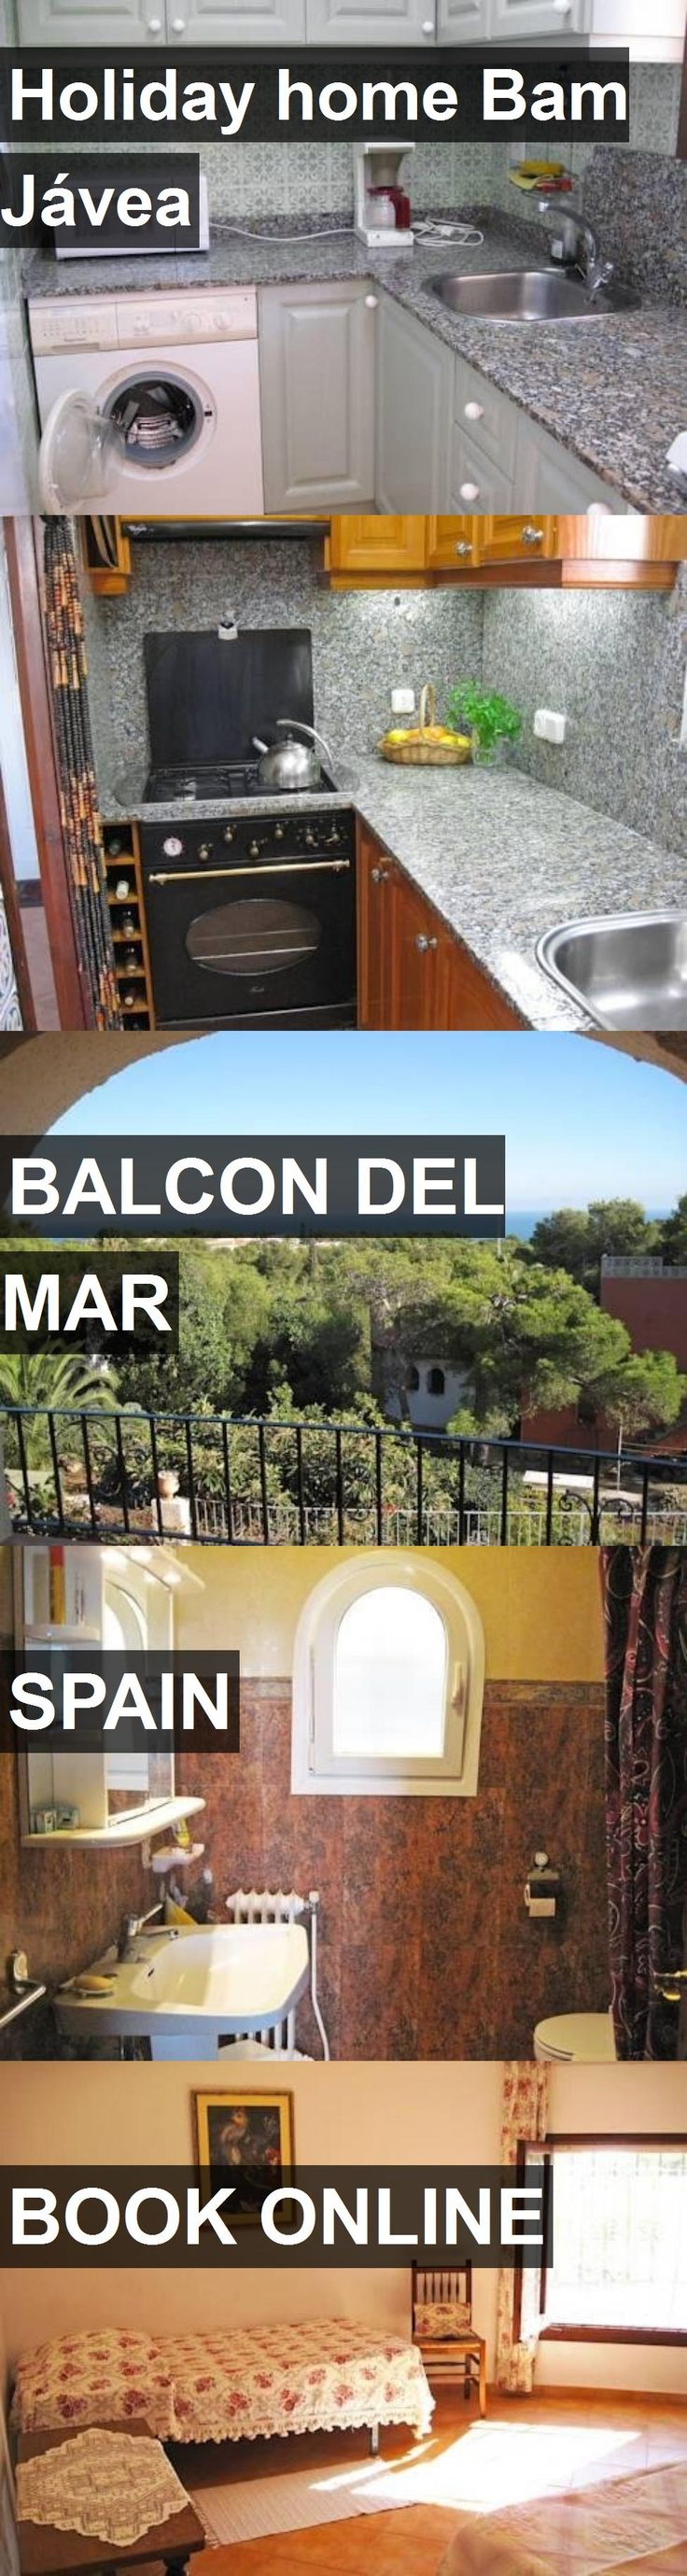 Hotel Holiday home Bam Jávea in Balcon del Mar, Spain. For more information, photos, reviews and best prices please follow the link. #Spain #BalcondelMar #travel #vacation #hotel